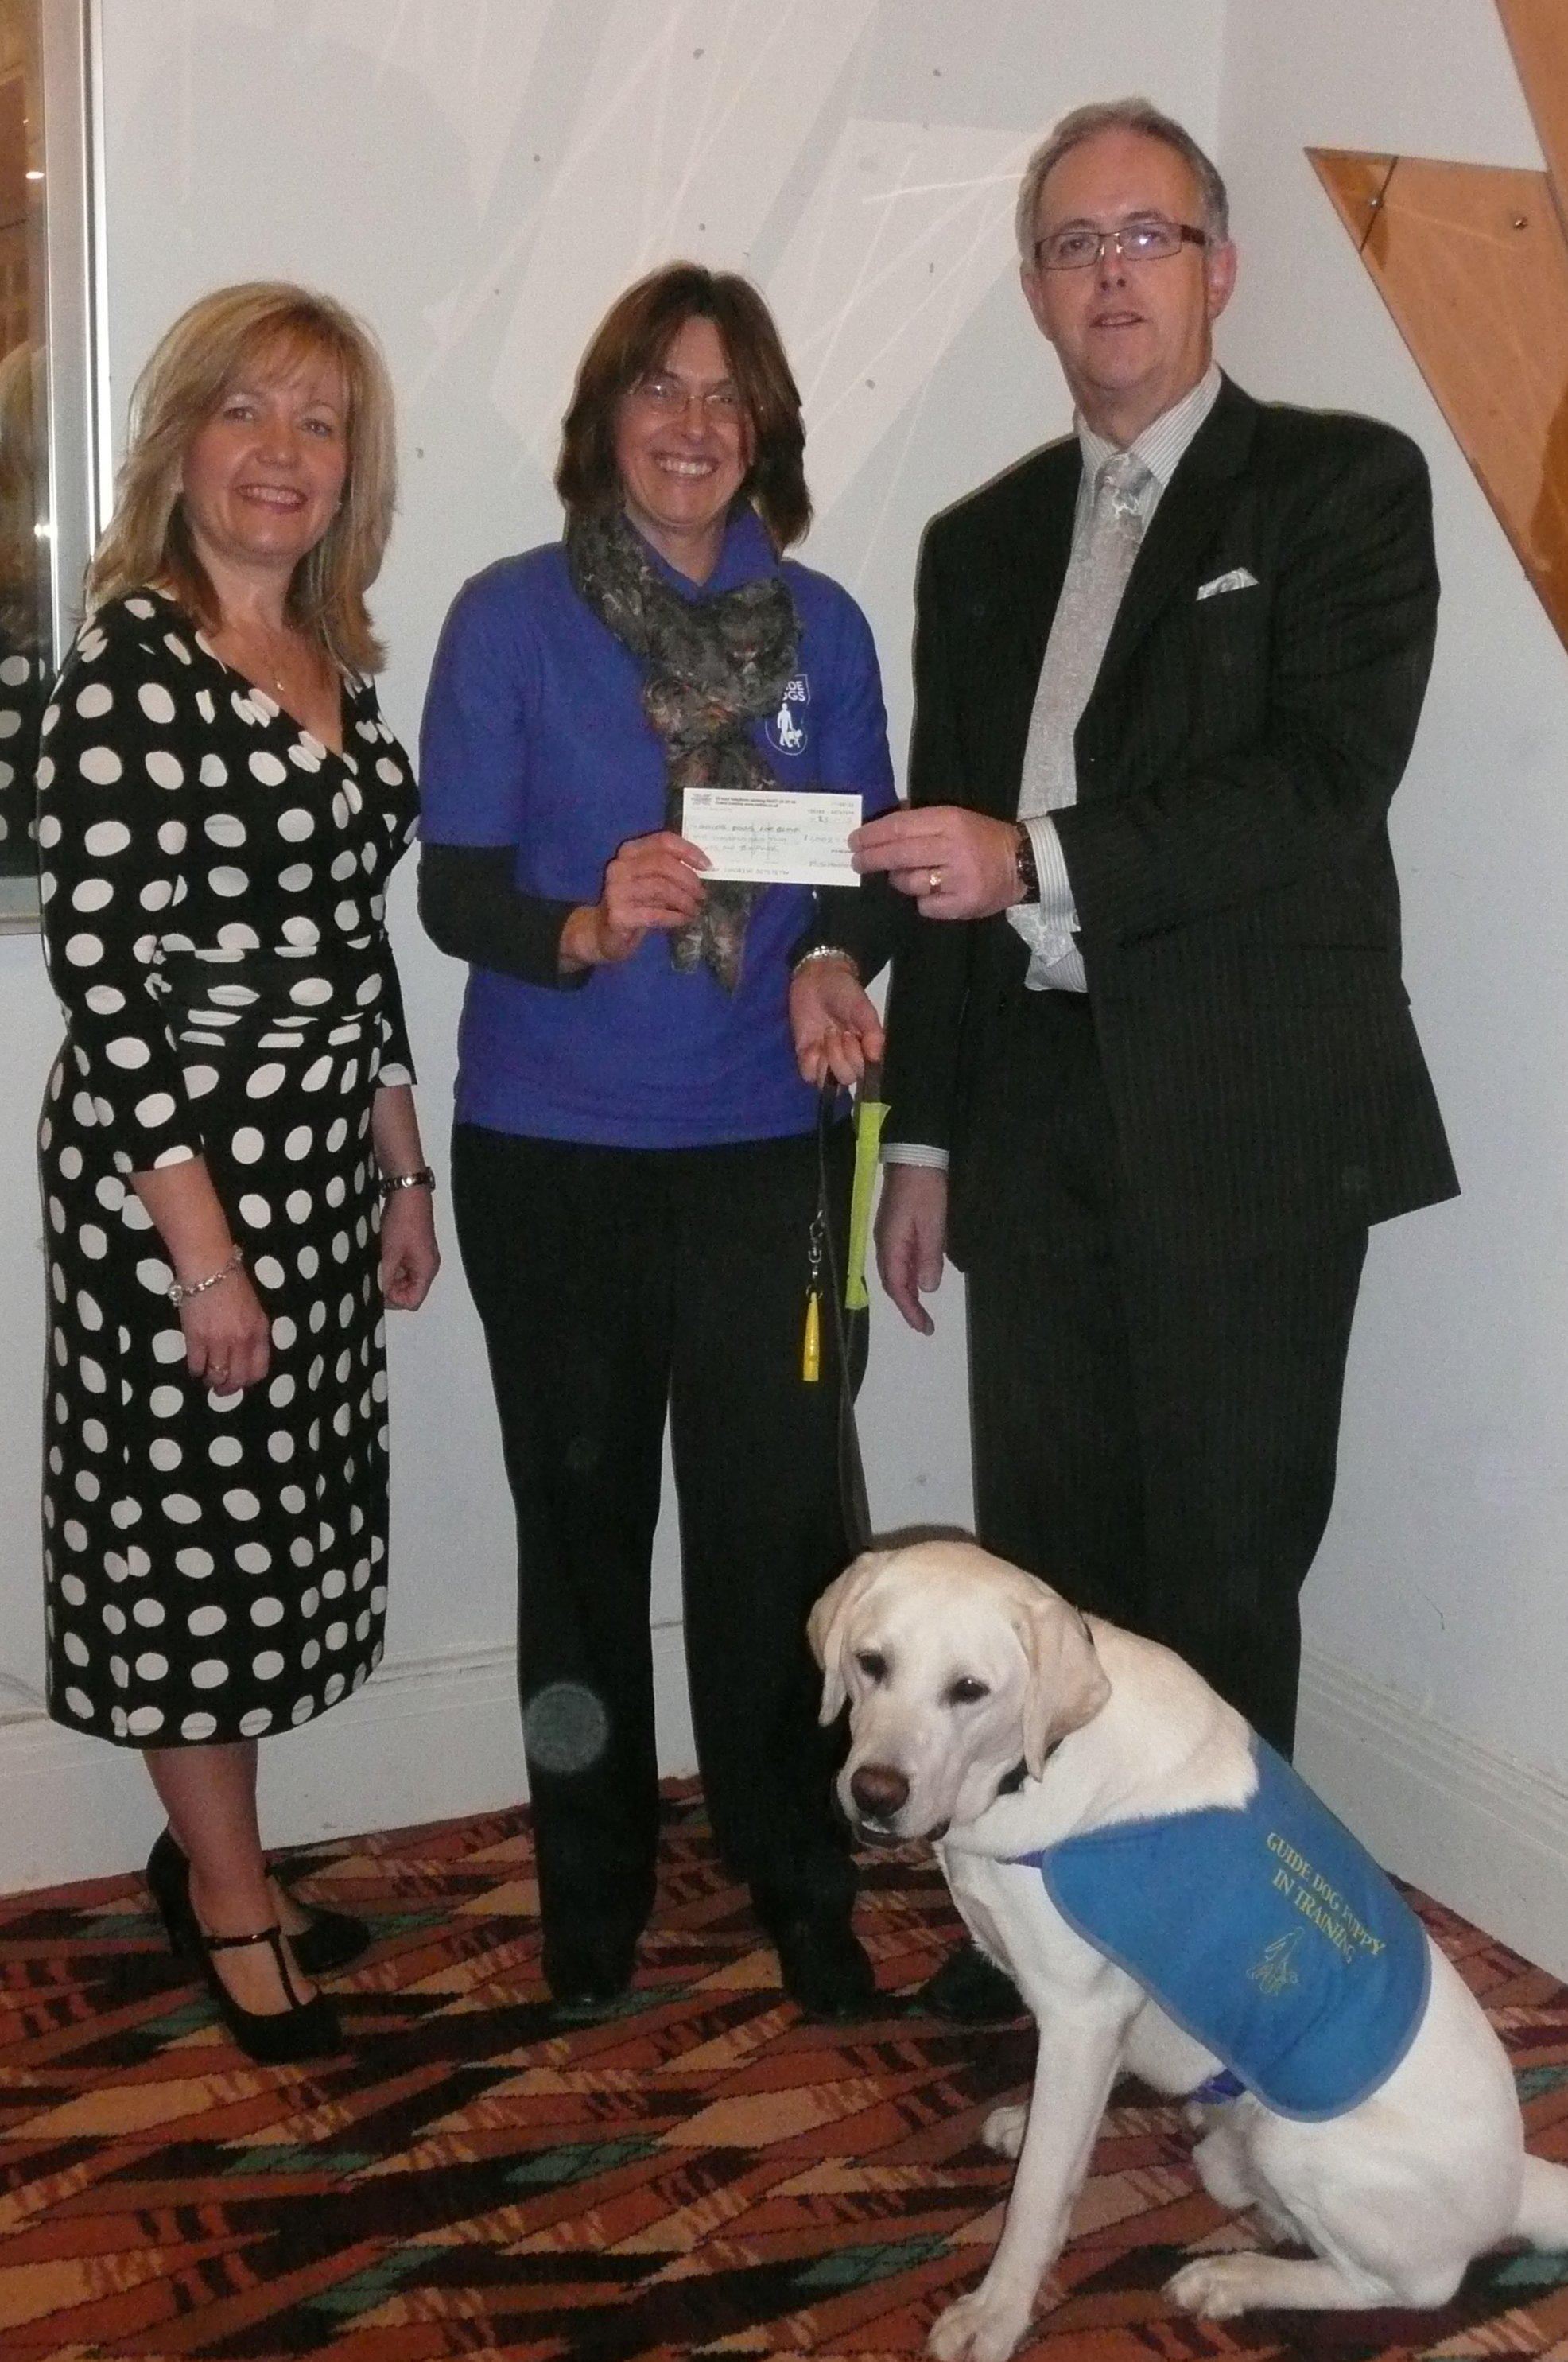 Mark and Tracey Helmore alongside Linda and guide dog puppy Weston